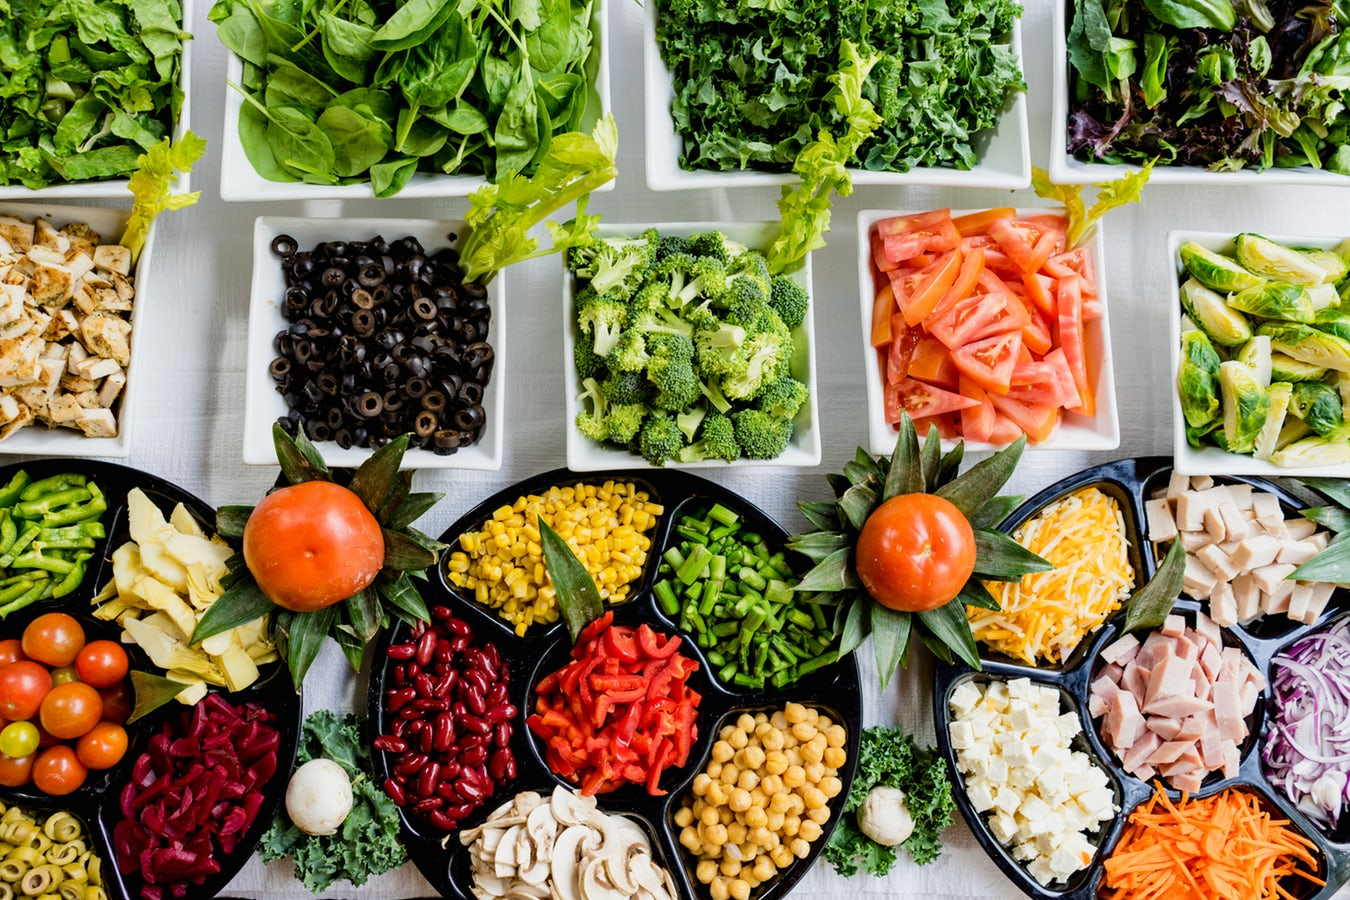 Healthy vegetables and food for athlete nutrition